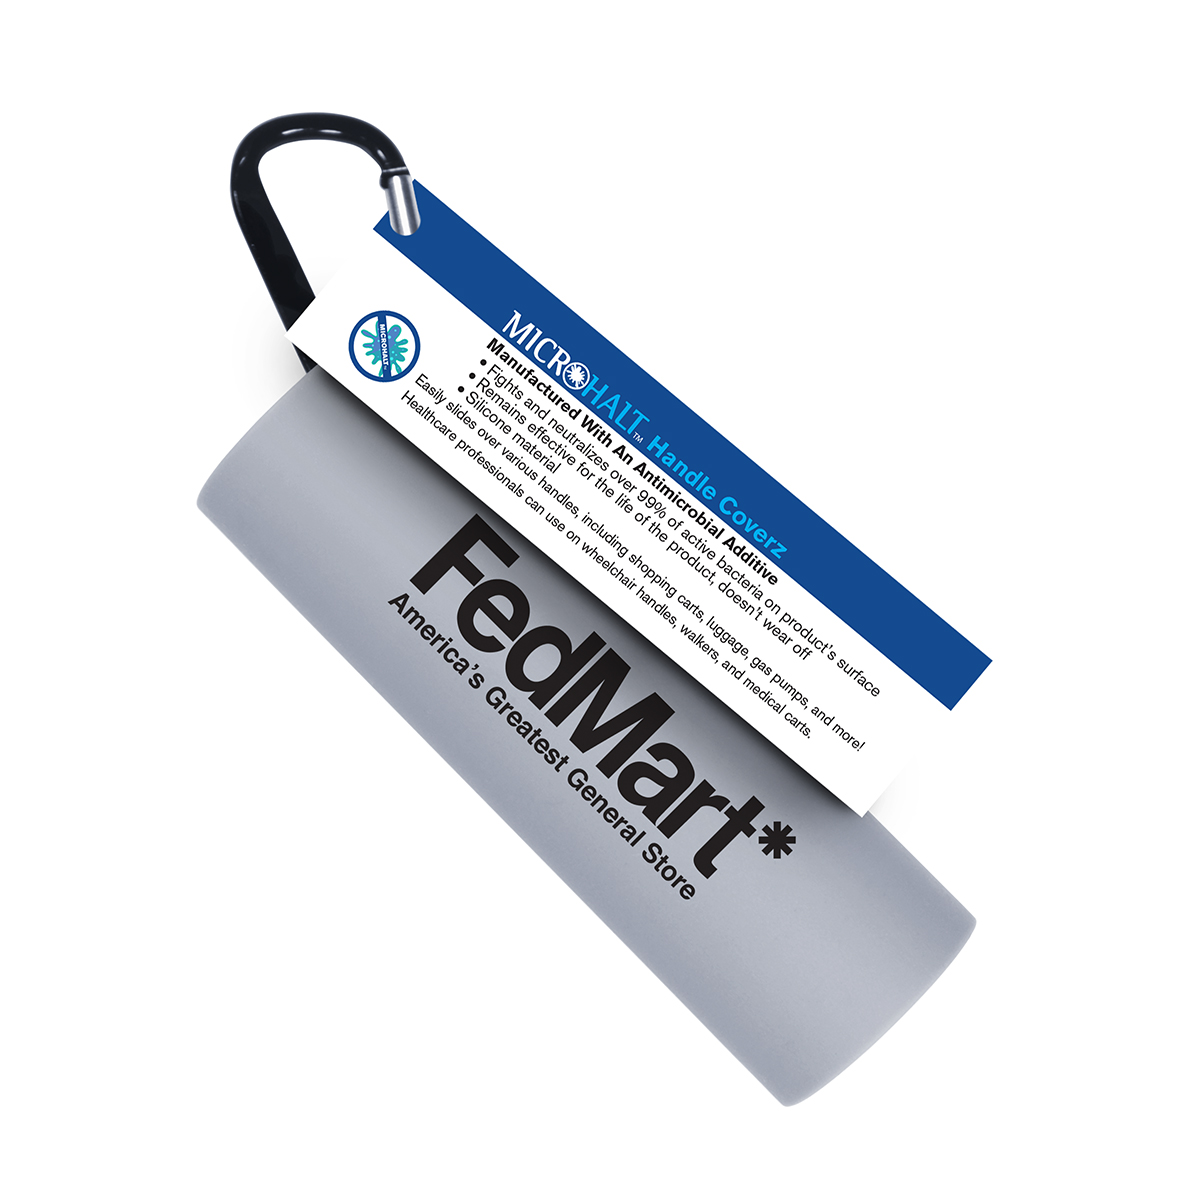 Microhalt Handle Coverz with Info Card - 1 Pack